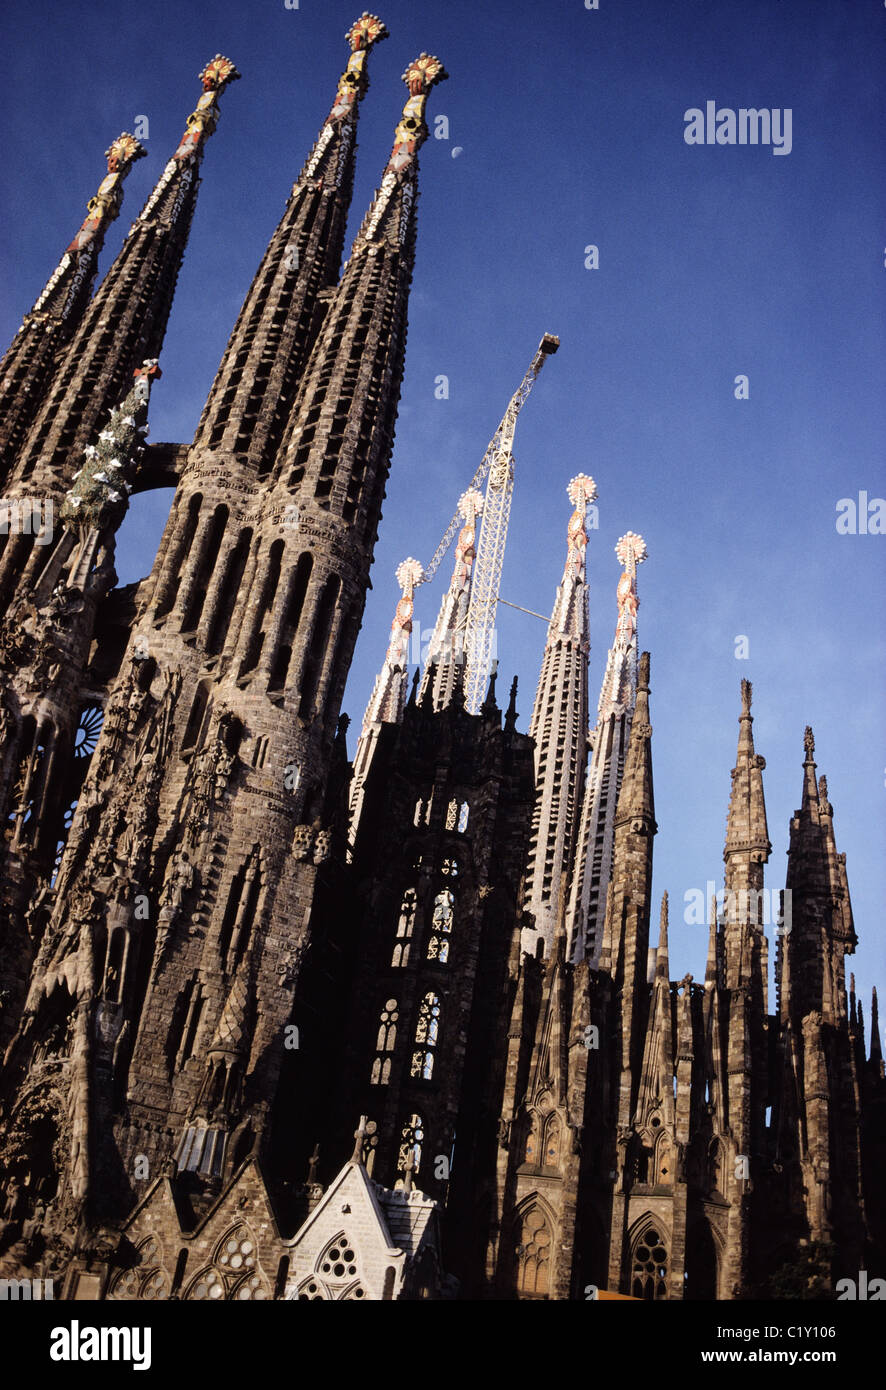 Towers of Familia Sagrada Cathedral in Barcelona - Stock Image